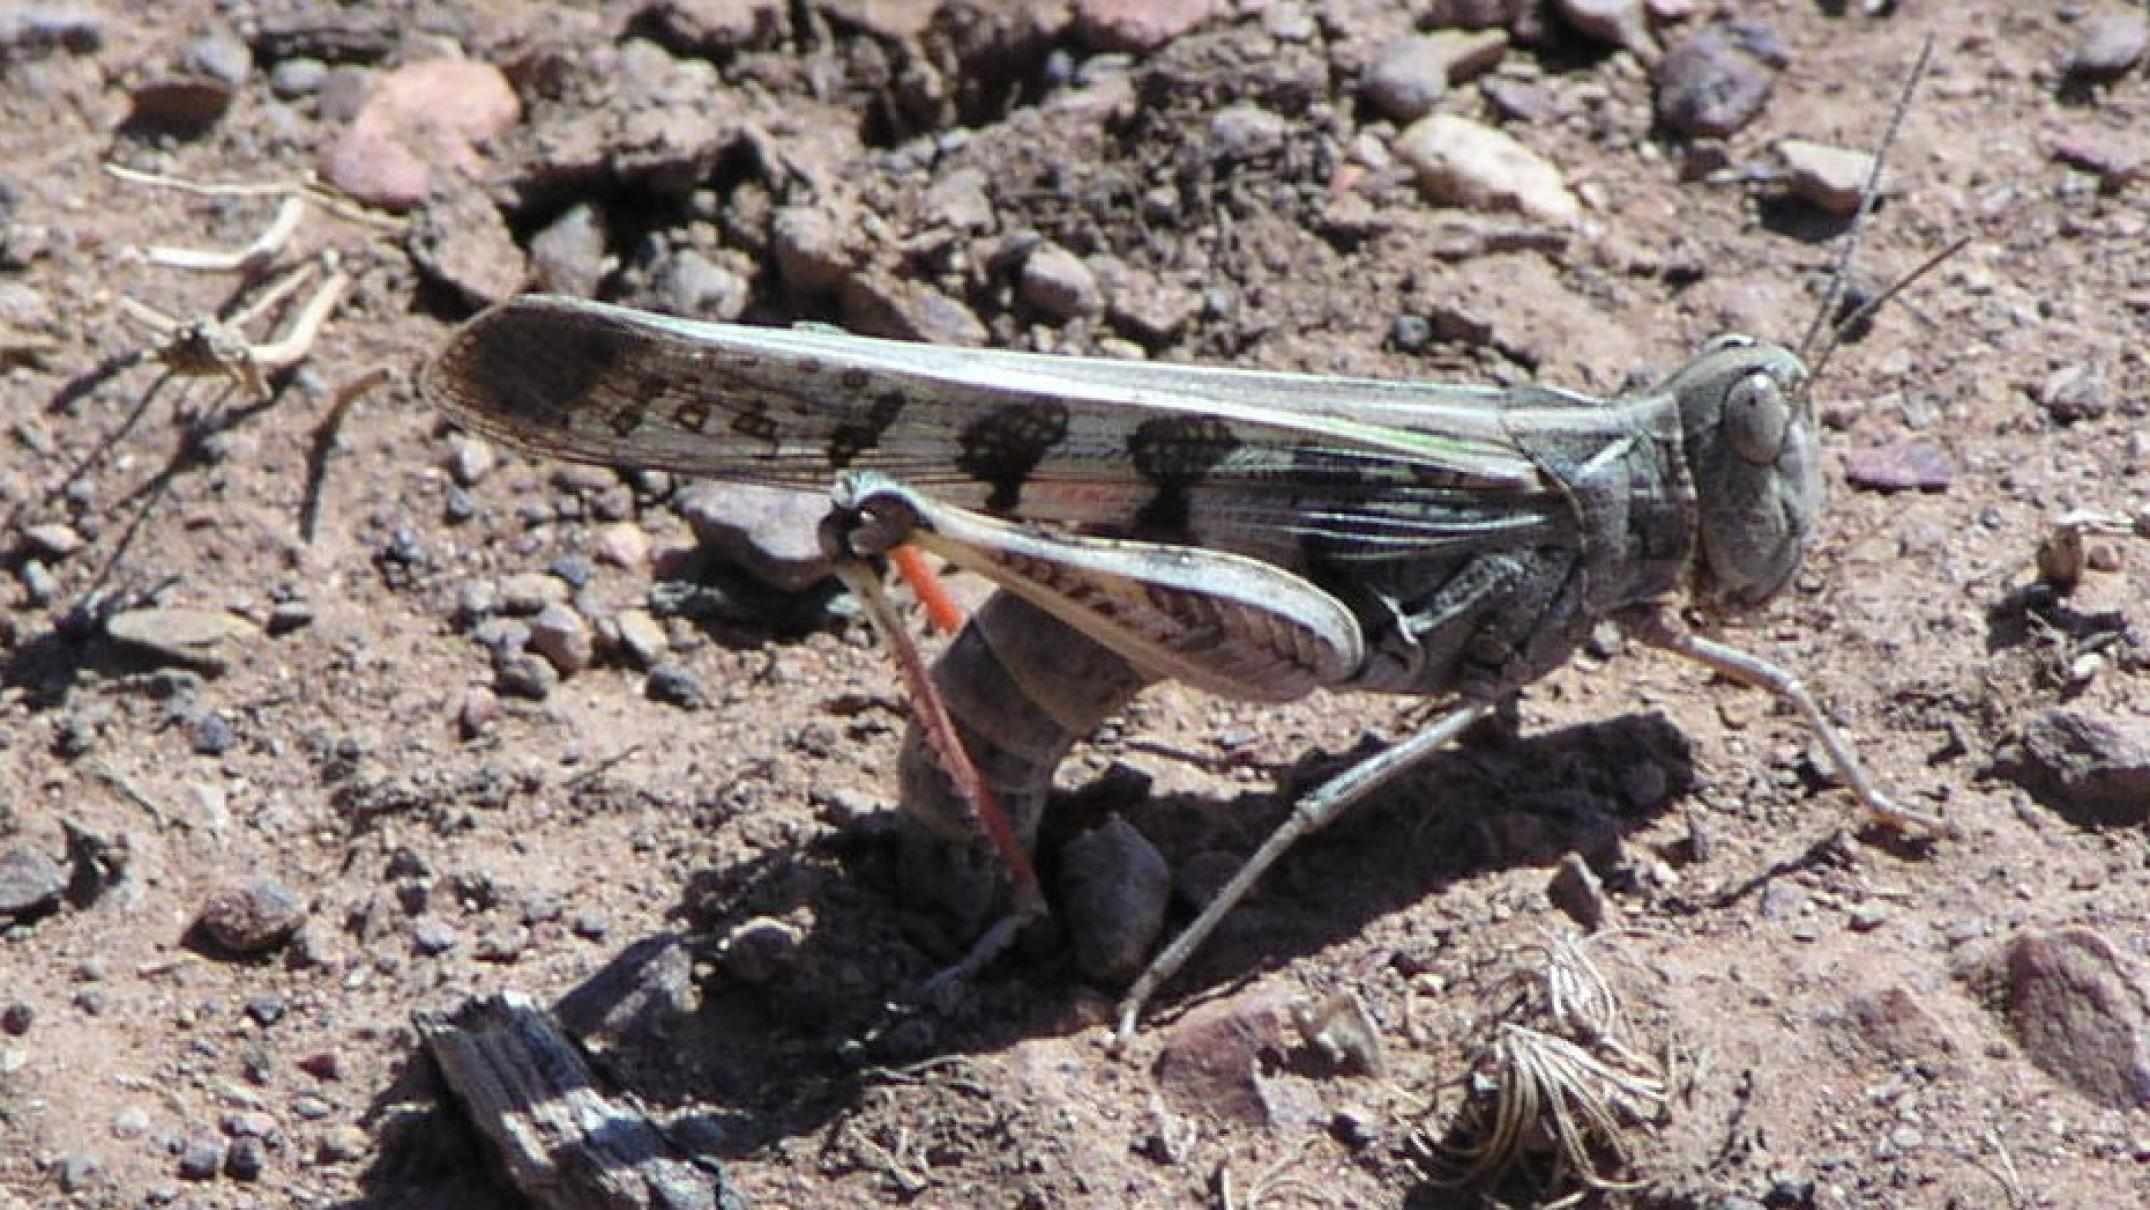 hatching-and-hungry:-locusts-descend-on-green-pastures-after-years-of-drought